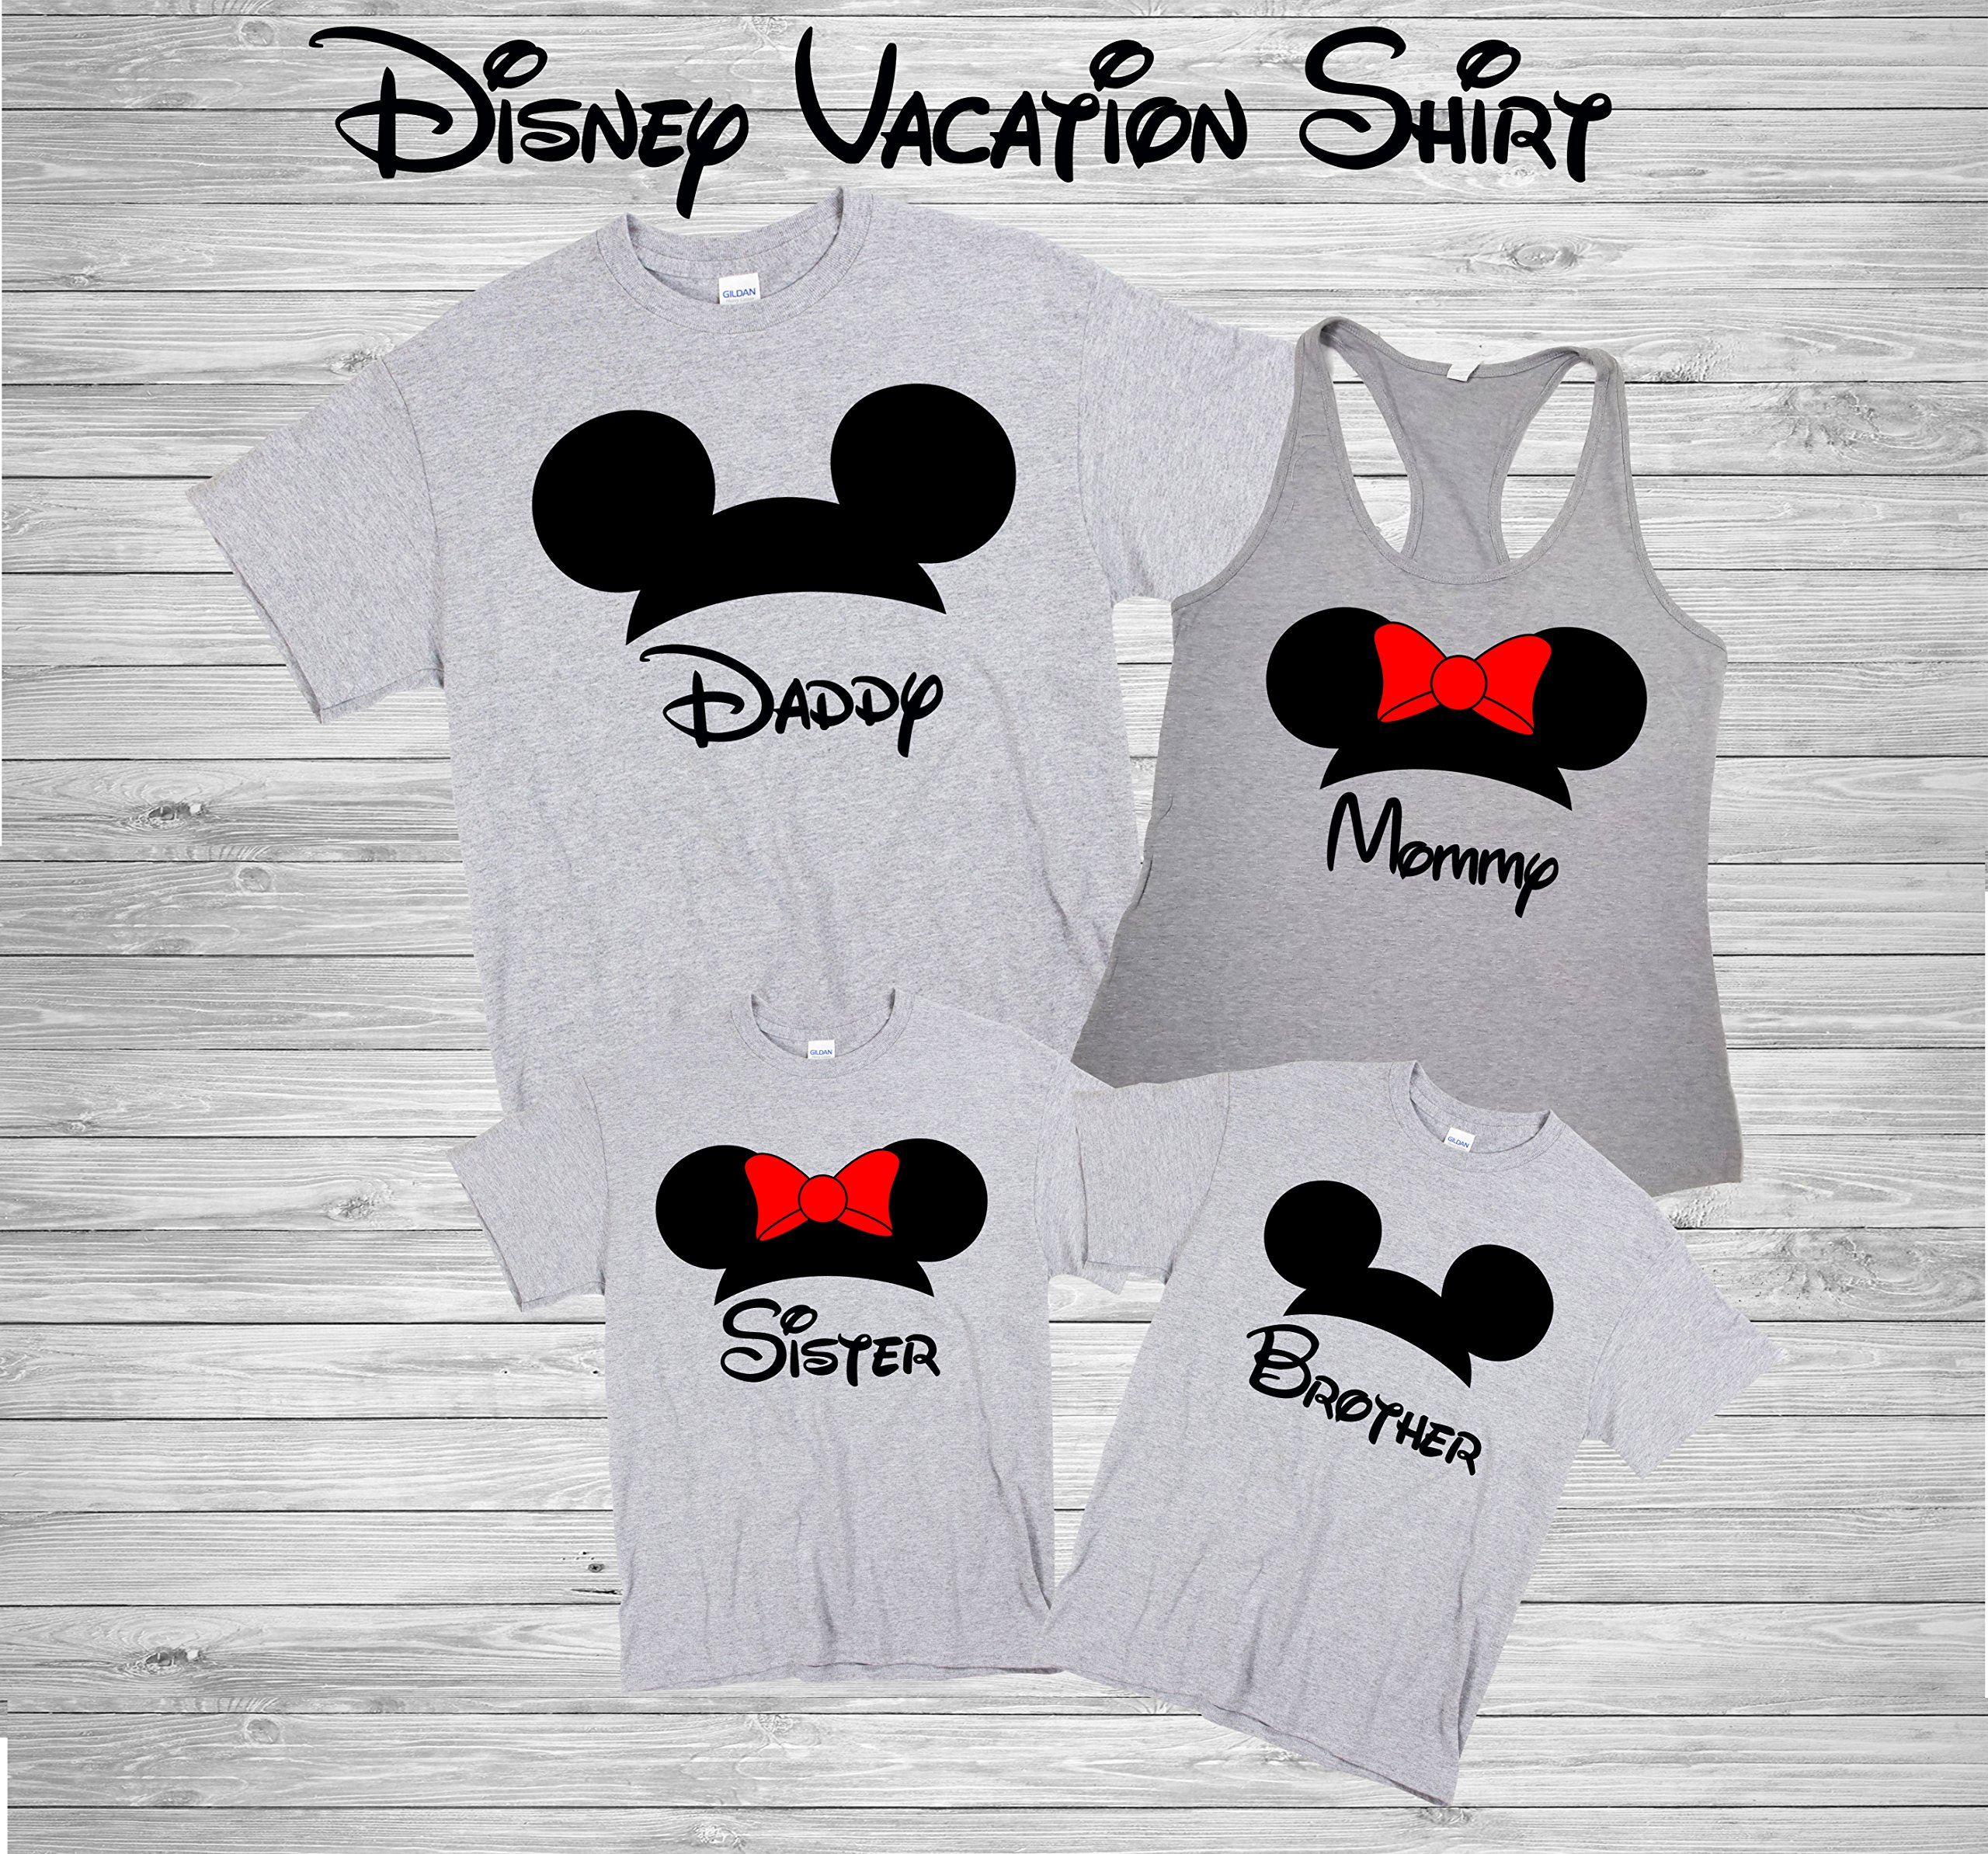 Disney Family Shirts Disney Shirts,Disney Family Shirts, Mickey, Minnie,Custom T-shirt,Personalized Disney Shirts for Family Shirts Matching D24